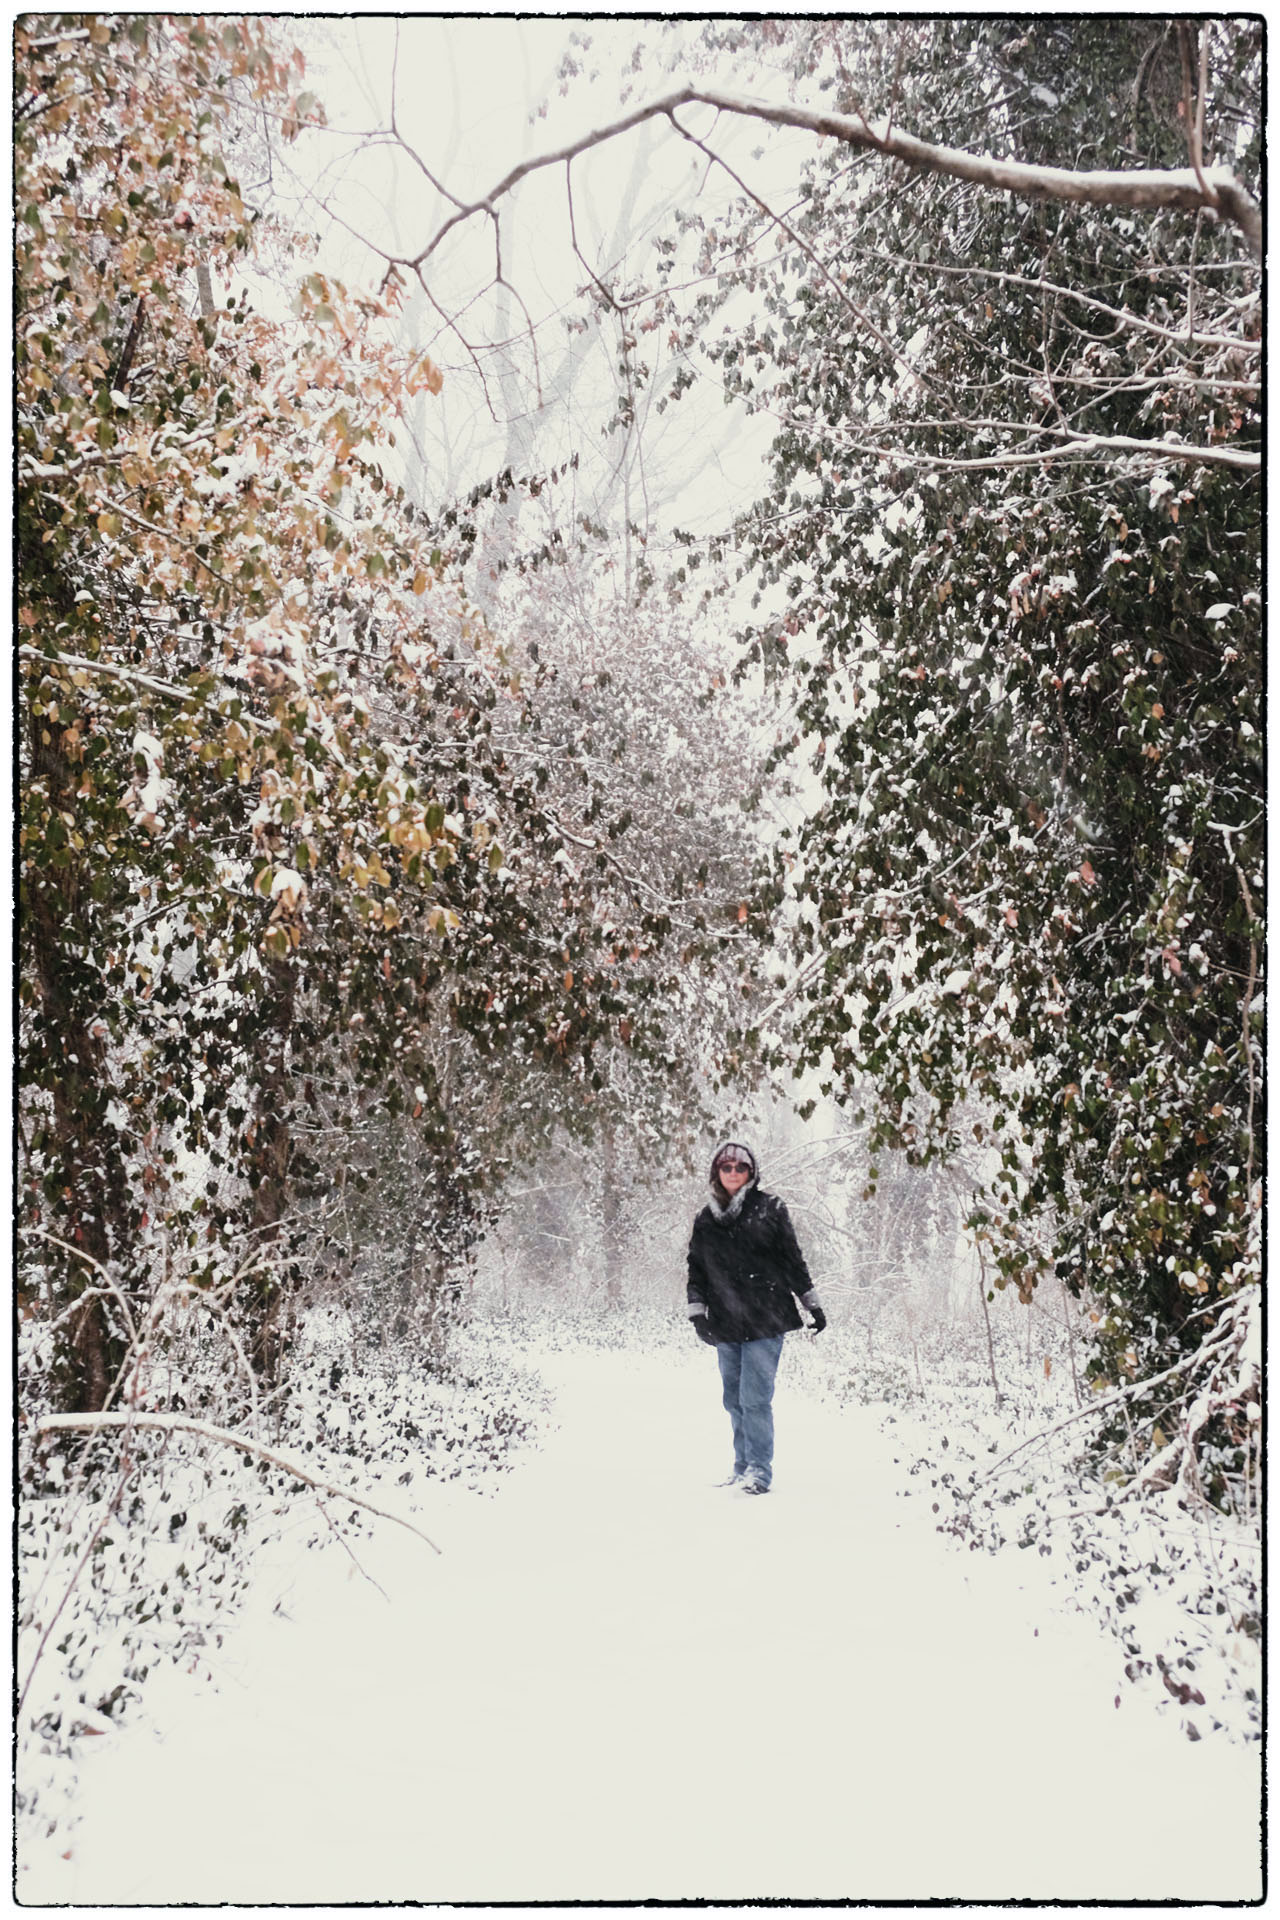 Cheryl Unruh standing in snowy forest path